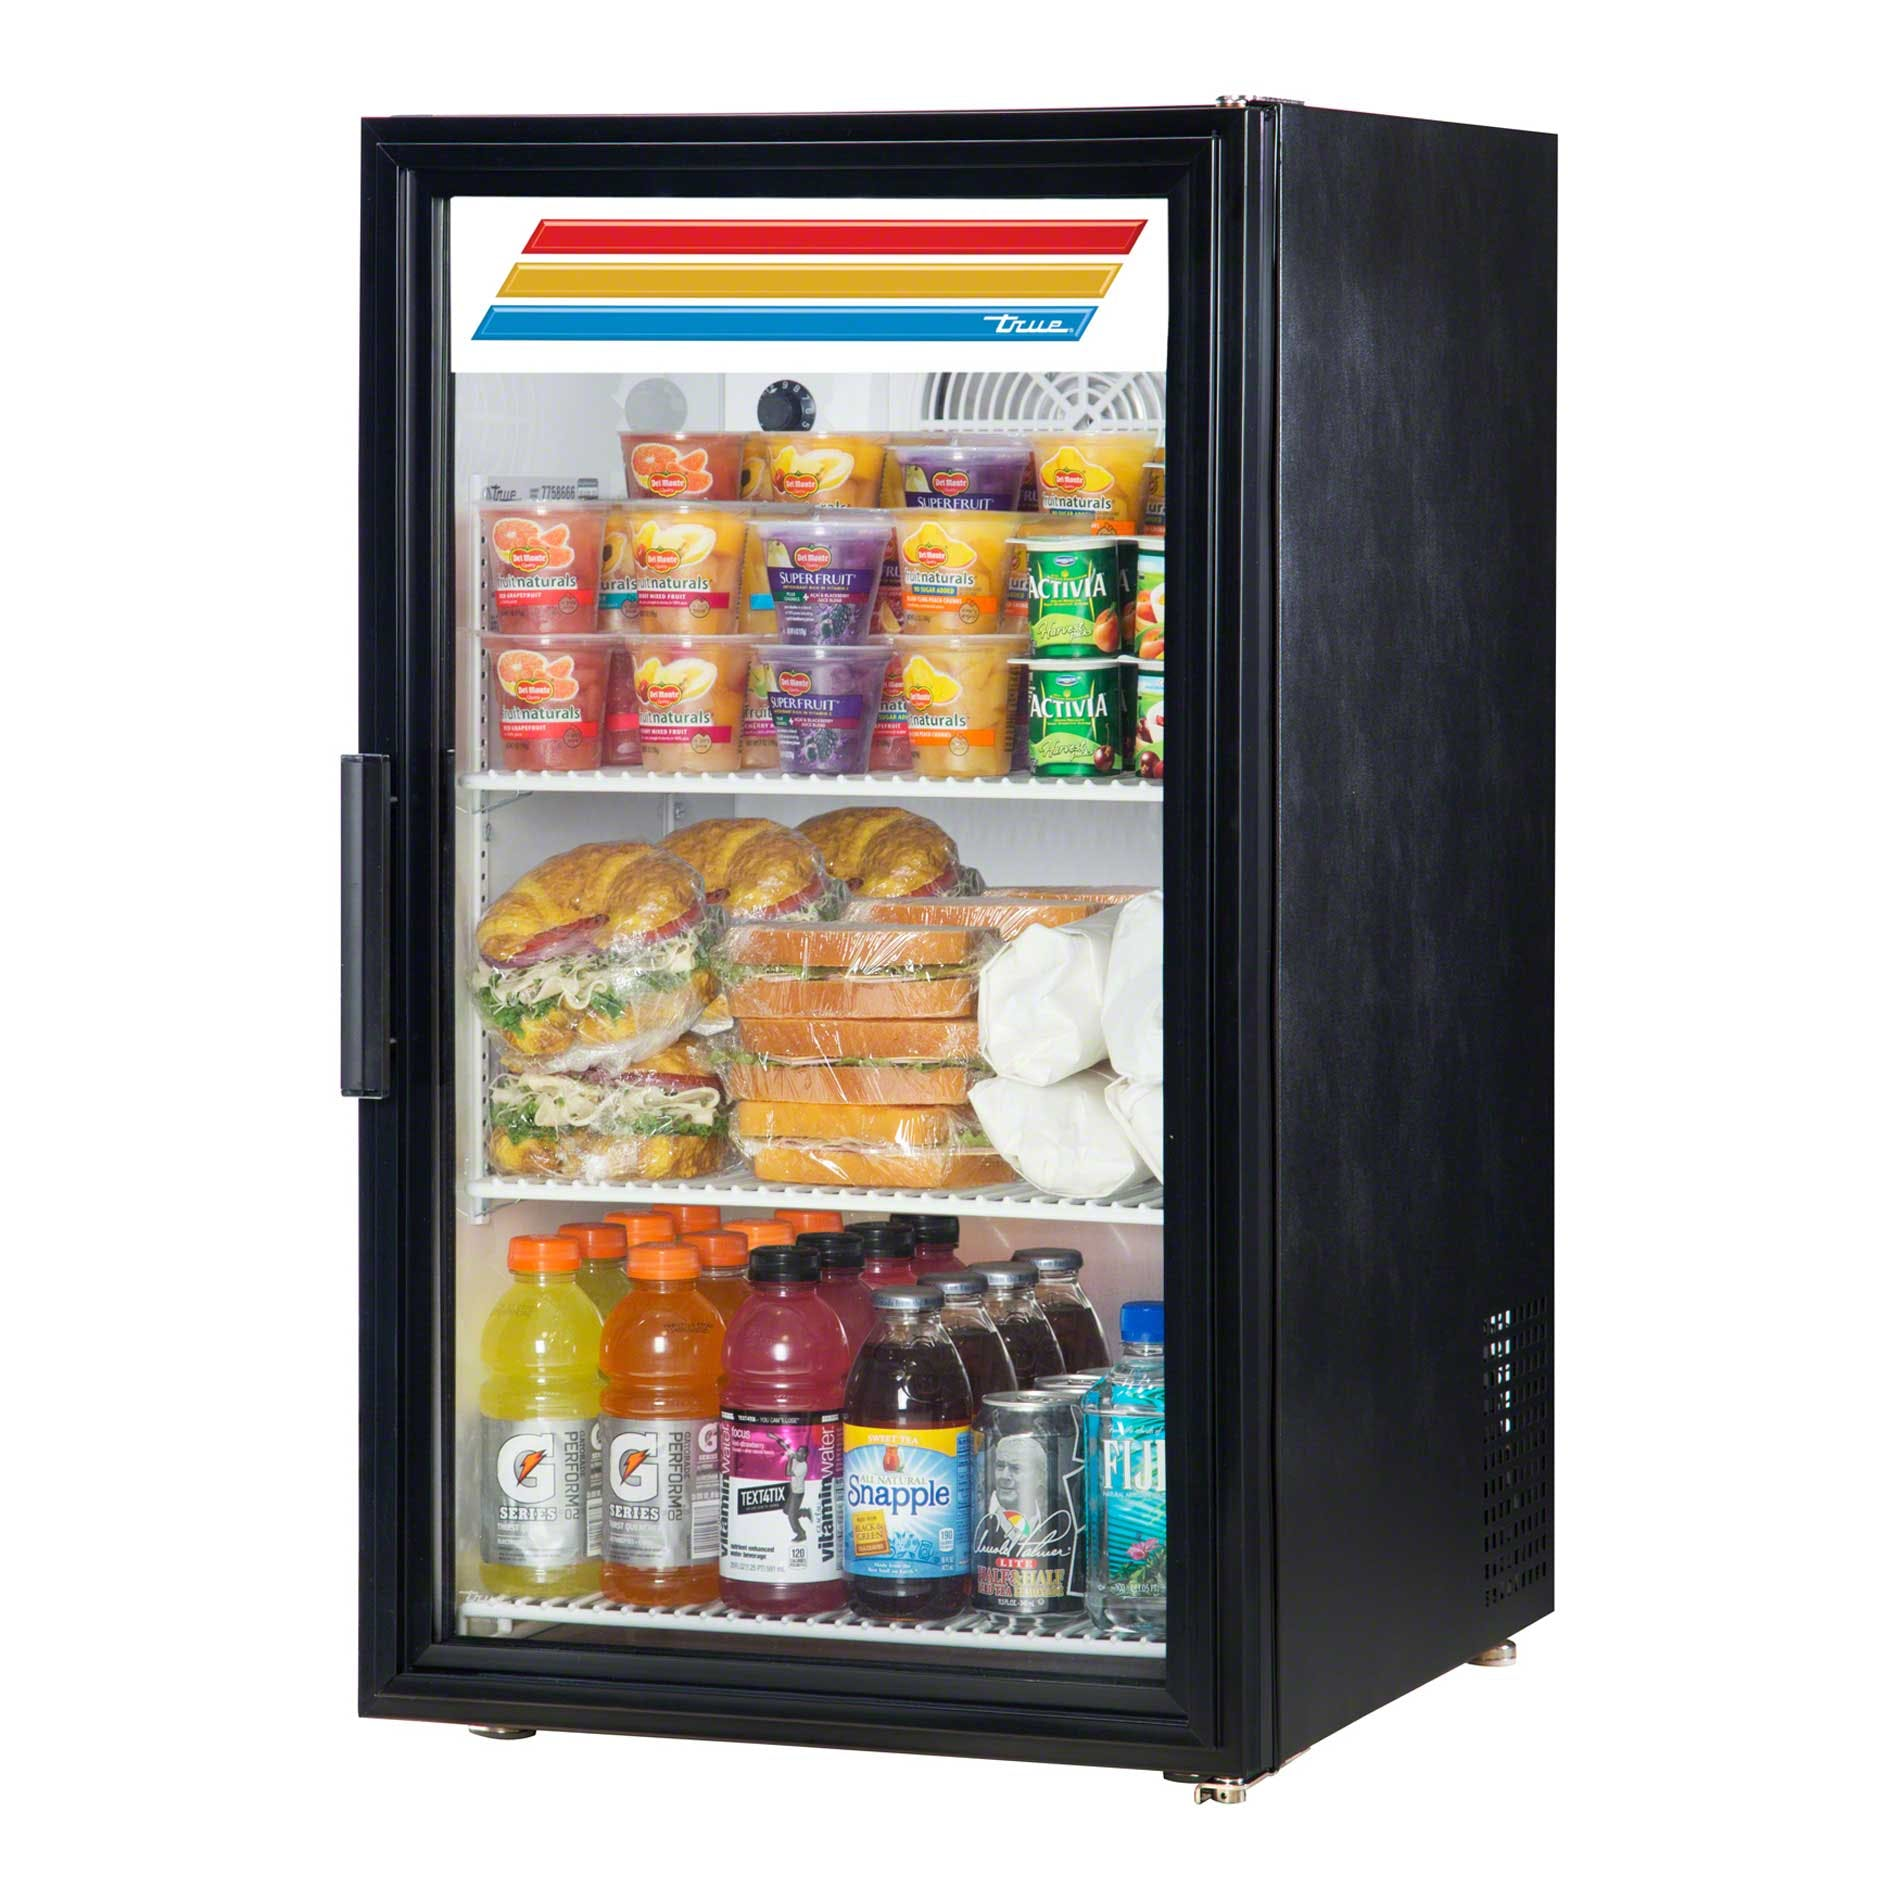 "True - GDM-6-LD 20"" Swing Door Countertop Merchandiser Refrigerator LED Commercial refrigerator sold by Food Service Warehouse"